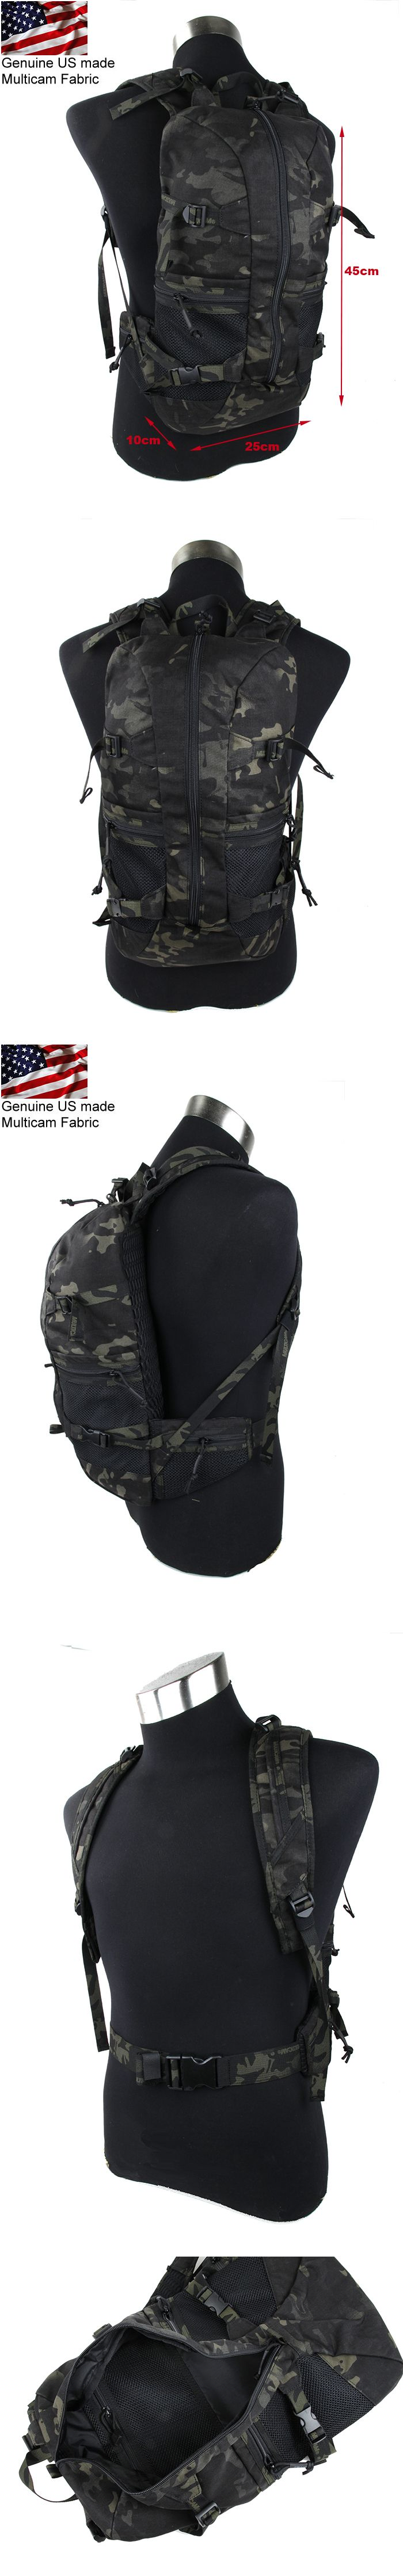 EbairSoft Airsoft parts & Tactical Gear - G Rasputin Item 3R01 Backpack ( Multicam Black ) RPT029-MCBK